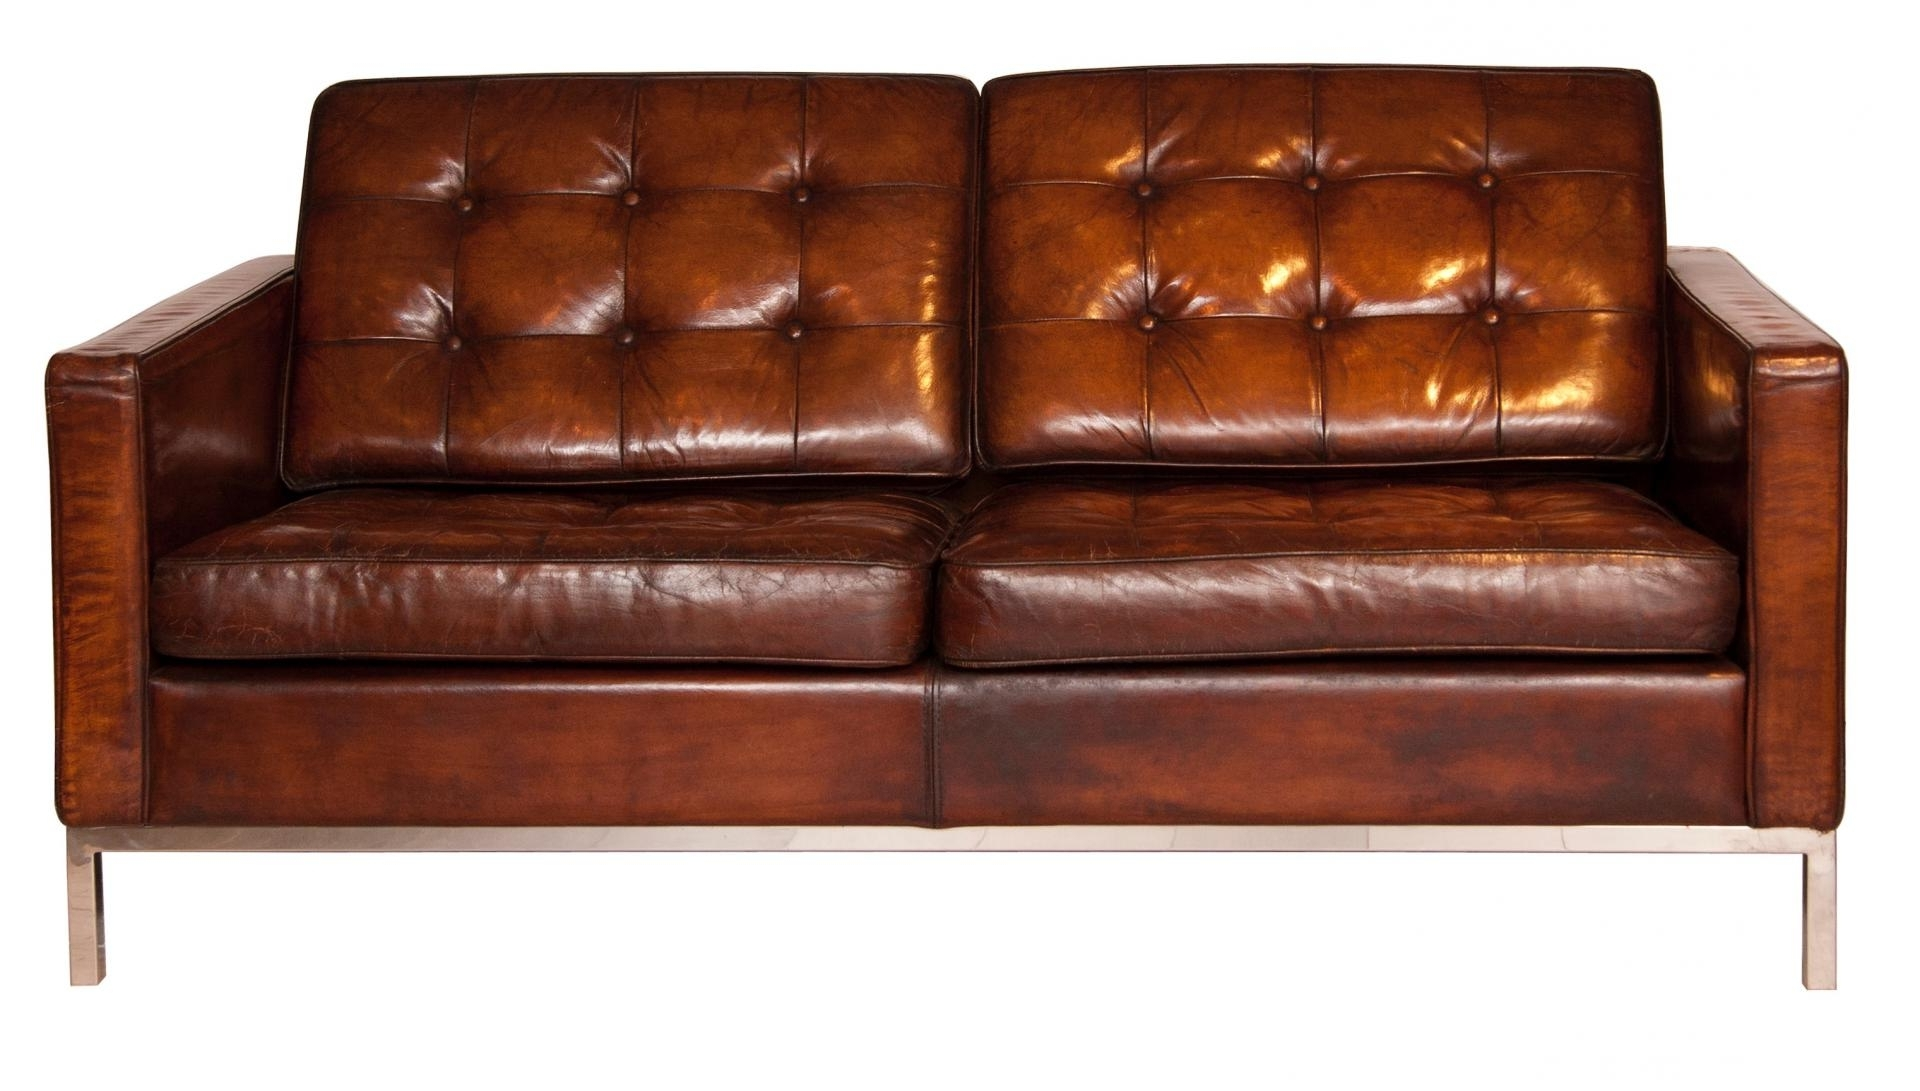 Recent Mid Century Sofaflorence Knoll Bassett, 1960S For Sale At Pamono Pertaining To Florence Large Sofas (View 16 of 20)